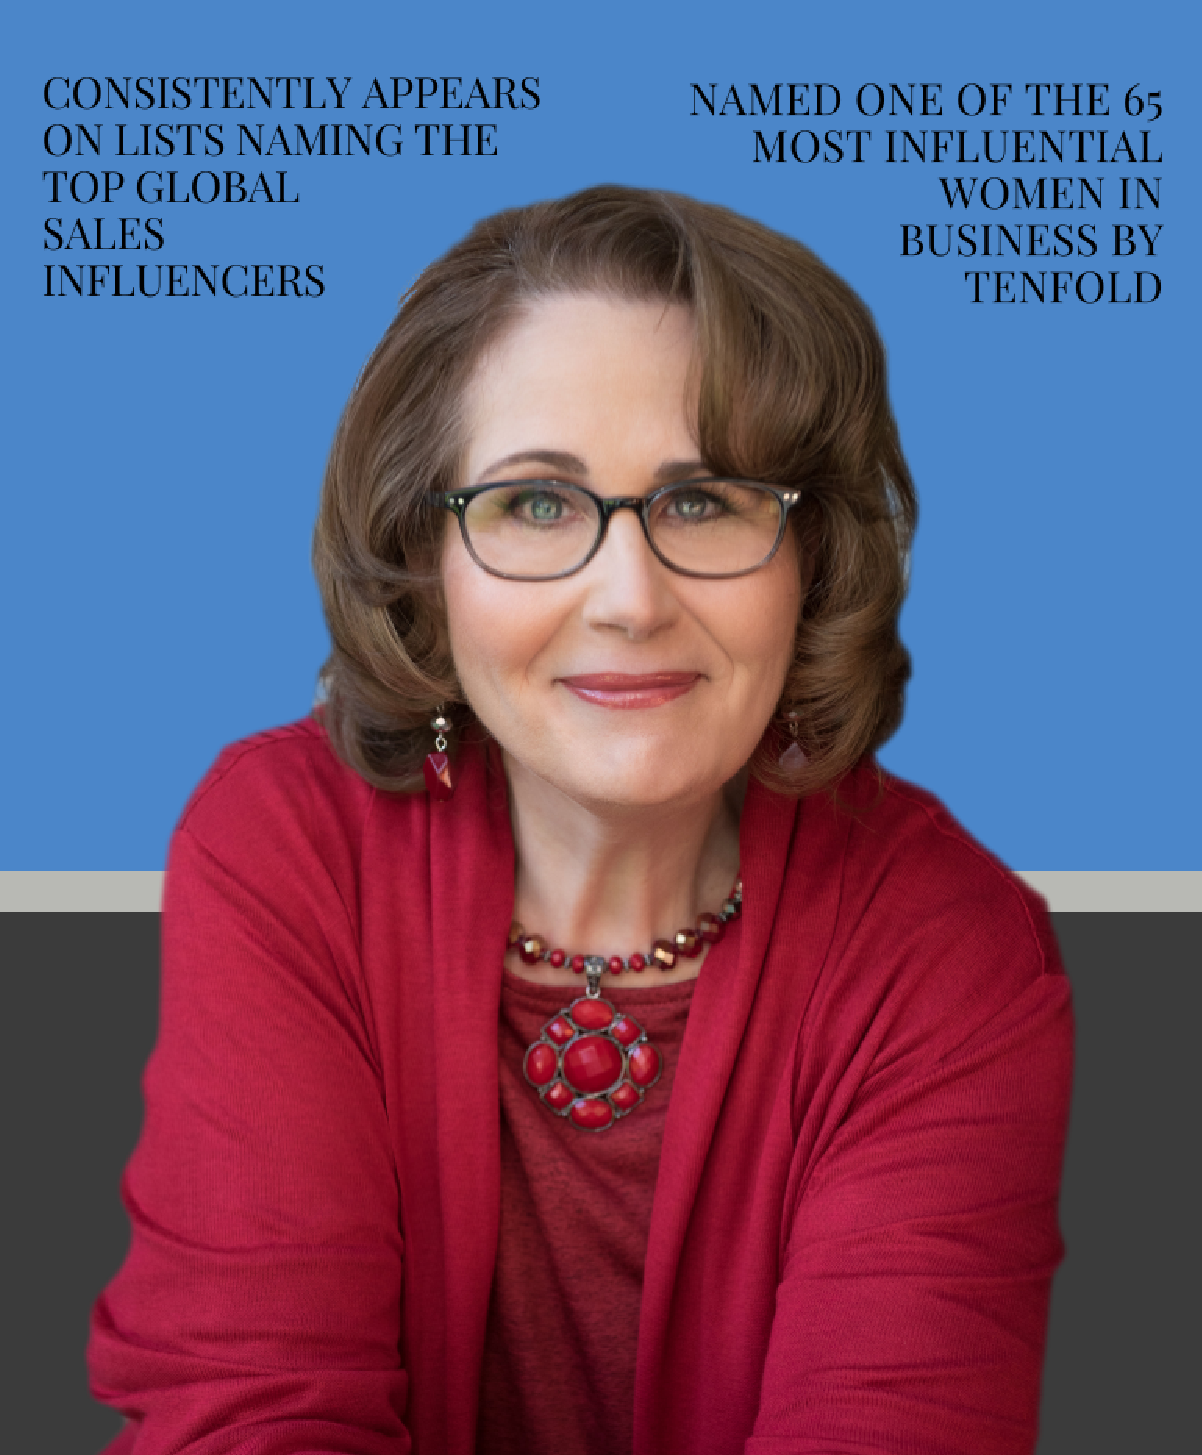 Headshot of Deb Calvert Named One of The 65 Most Influential Women in Business By Tenfold